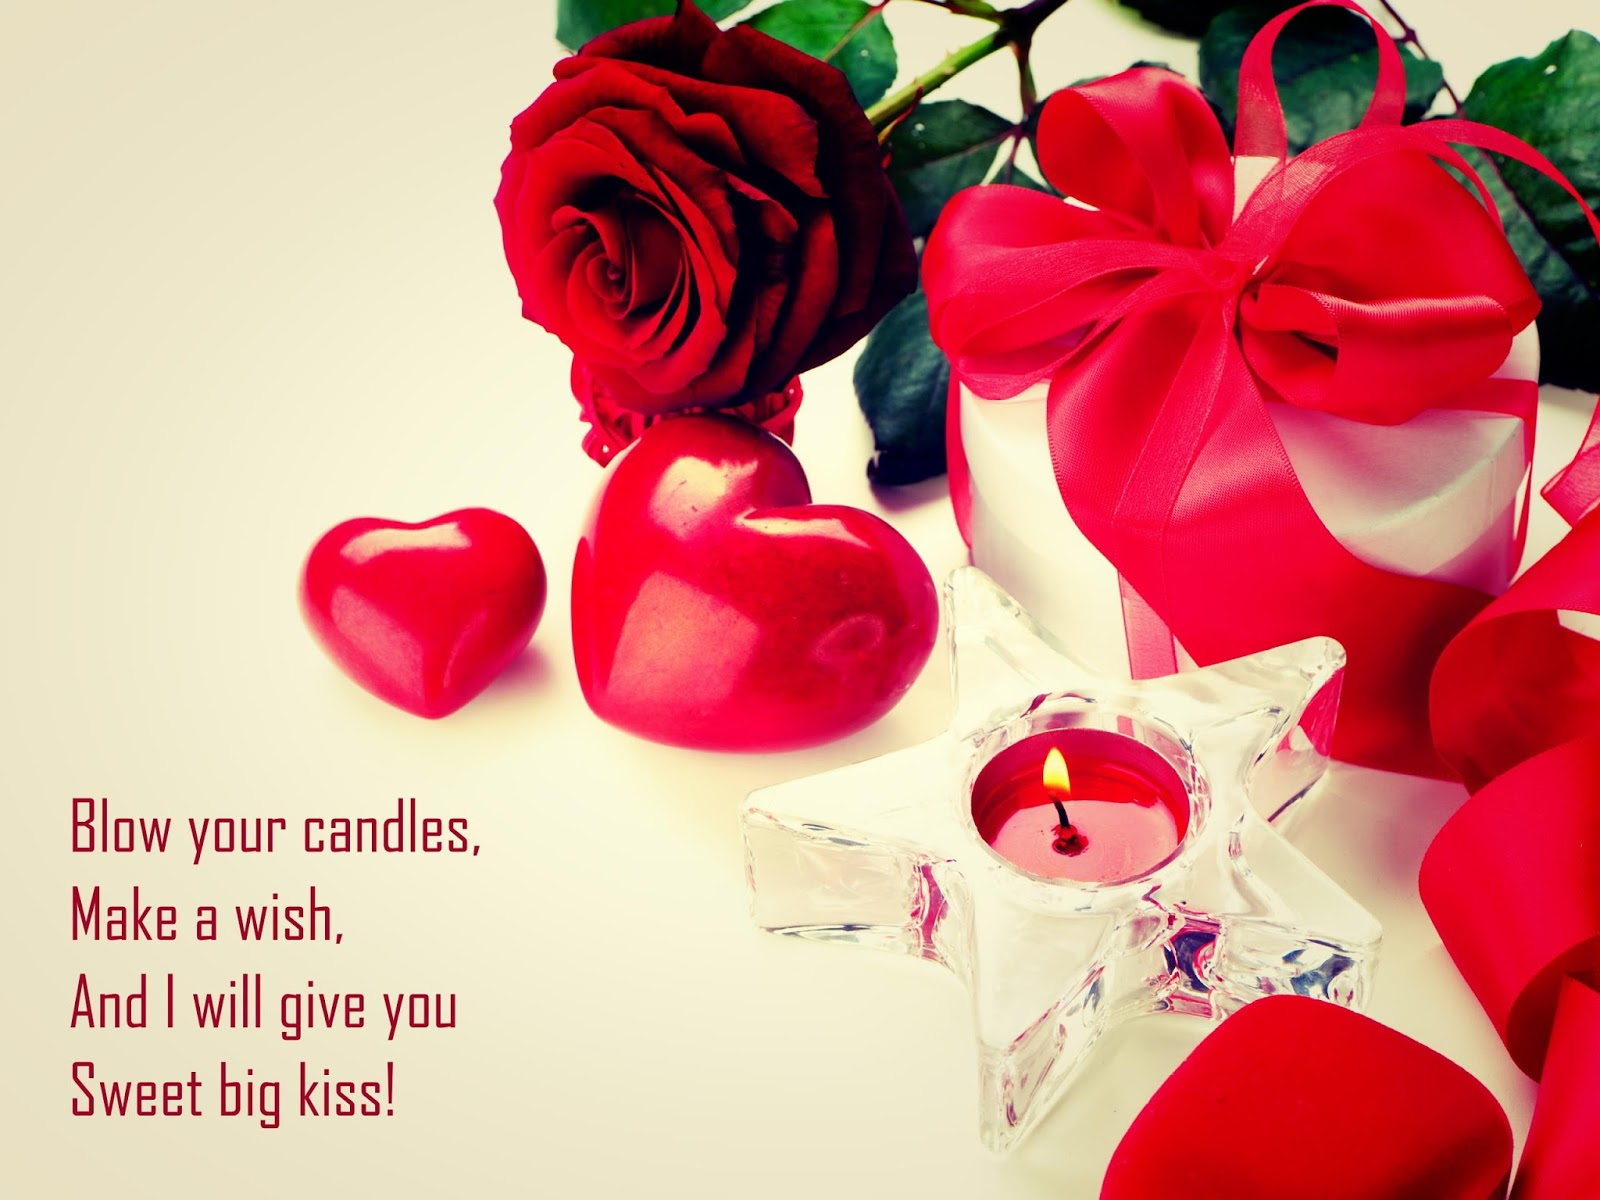 Birthday Wishes Romantic Him ~ Romantic birthday gifts hd wallpapers for girlfriend